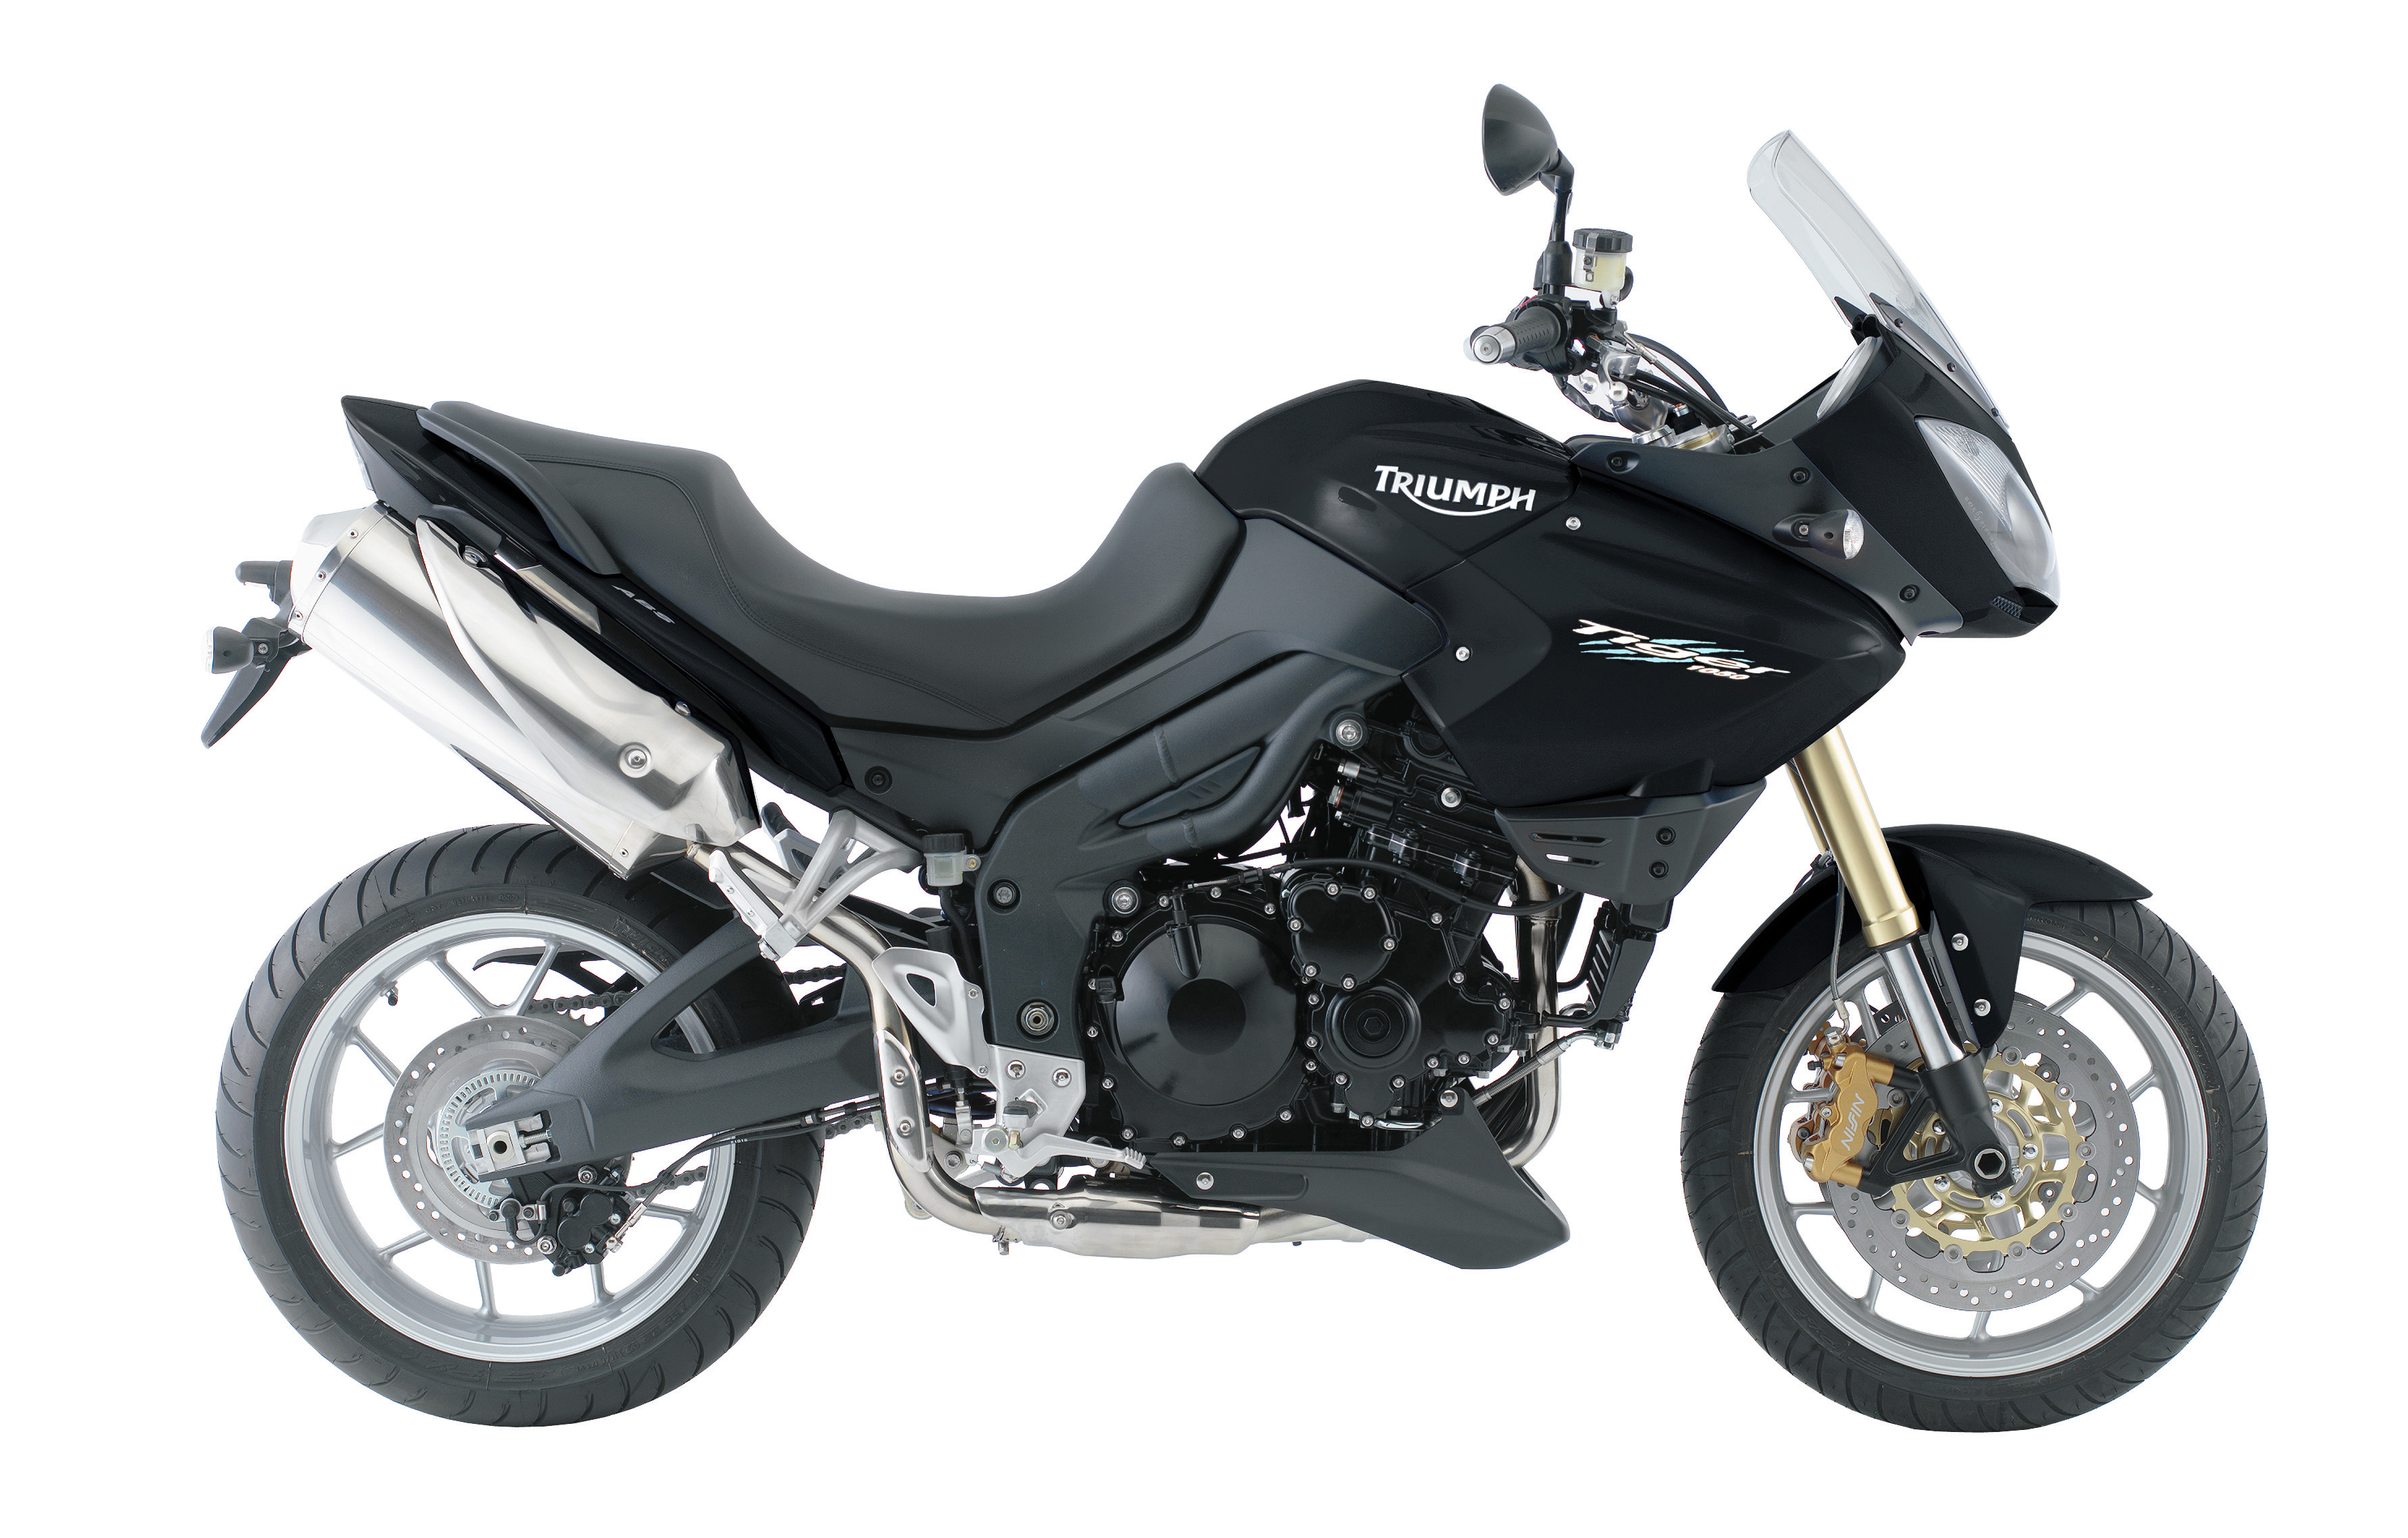 TRIUMPH TIGER 1050 SE black